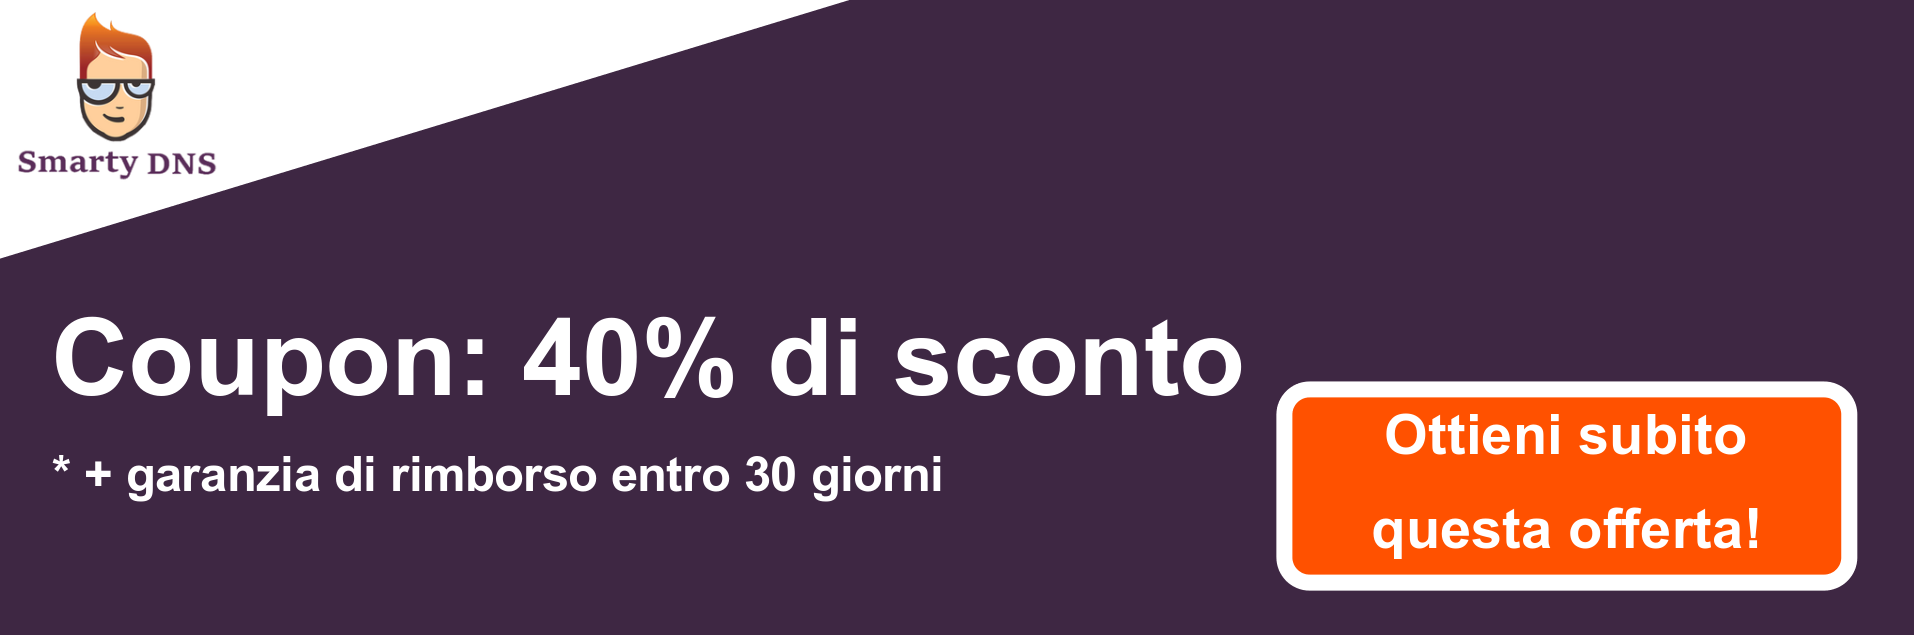 Banner coupon SmartyDNS - 40% di sconto